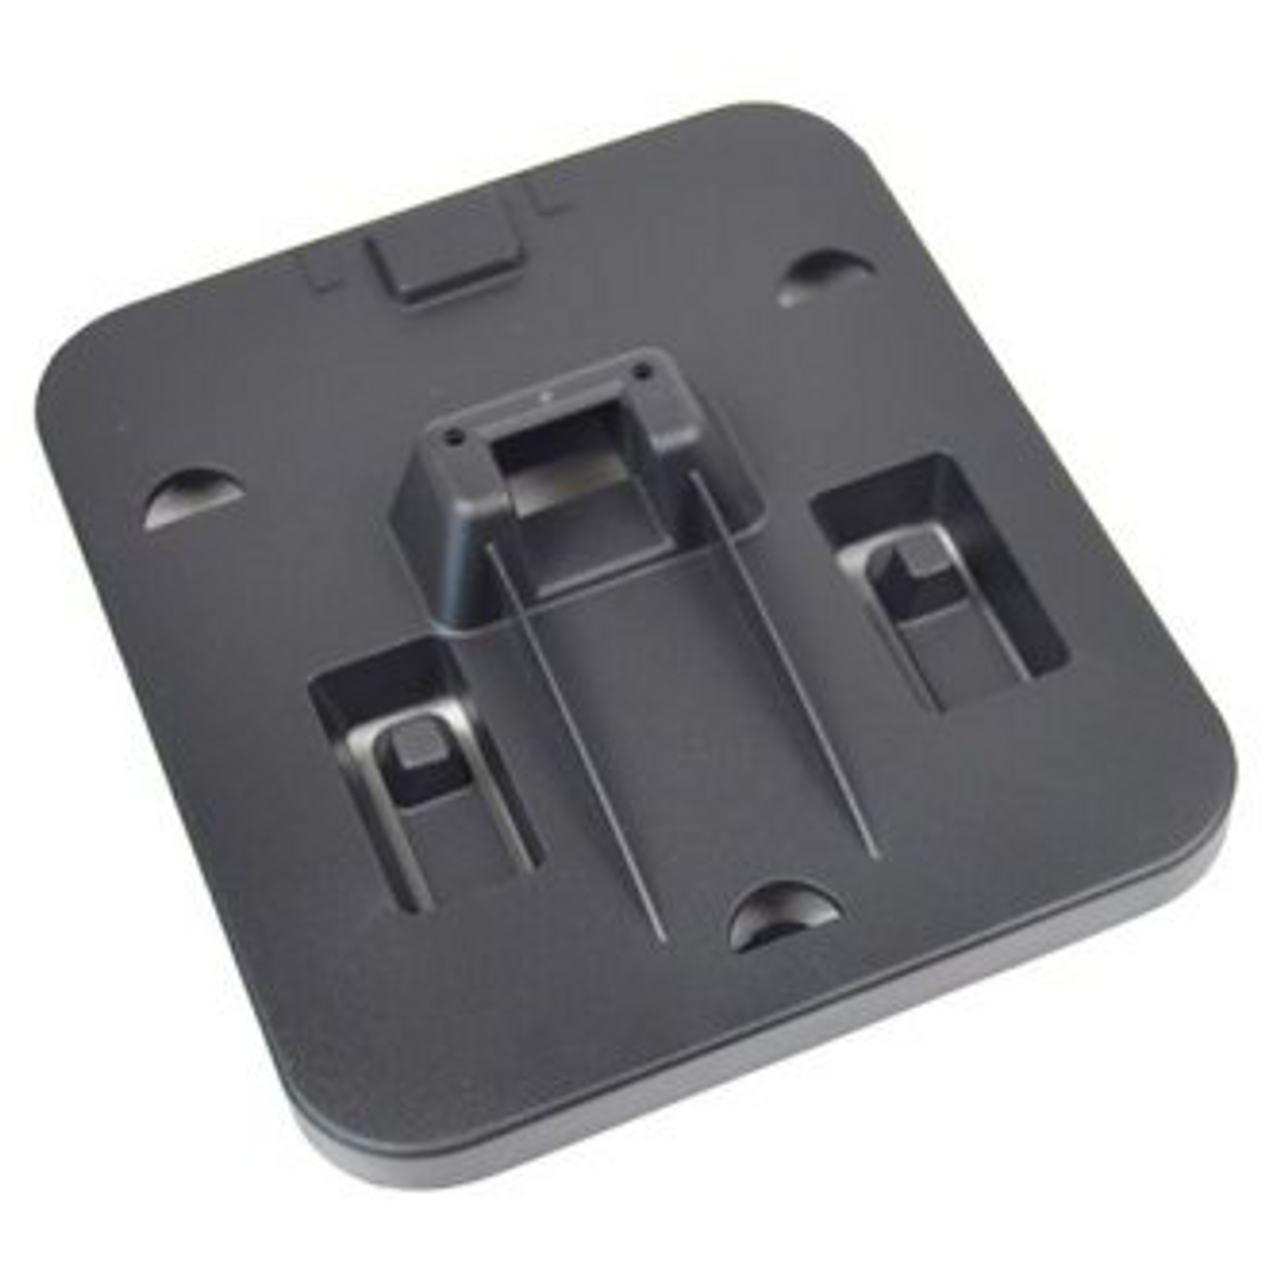 Ingenico iSC250 Safe Base Compact Stand